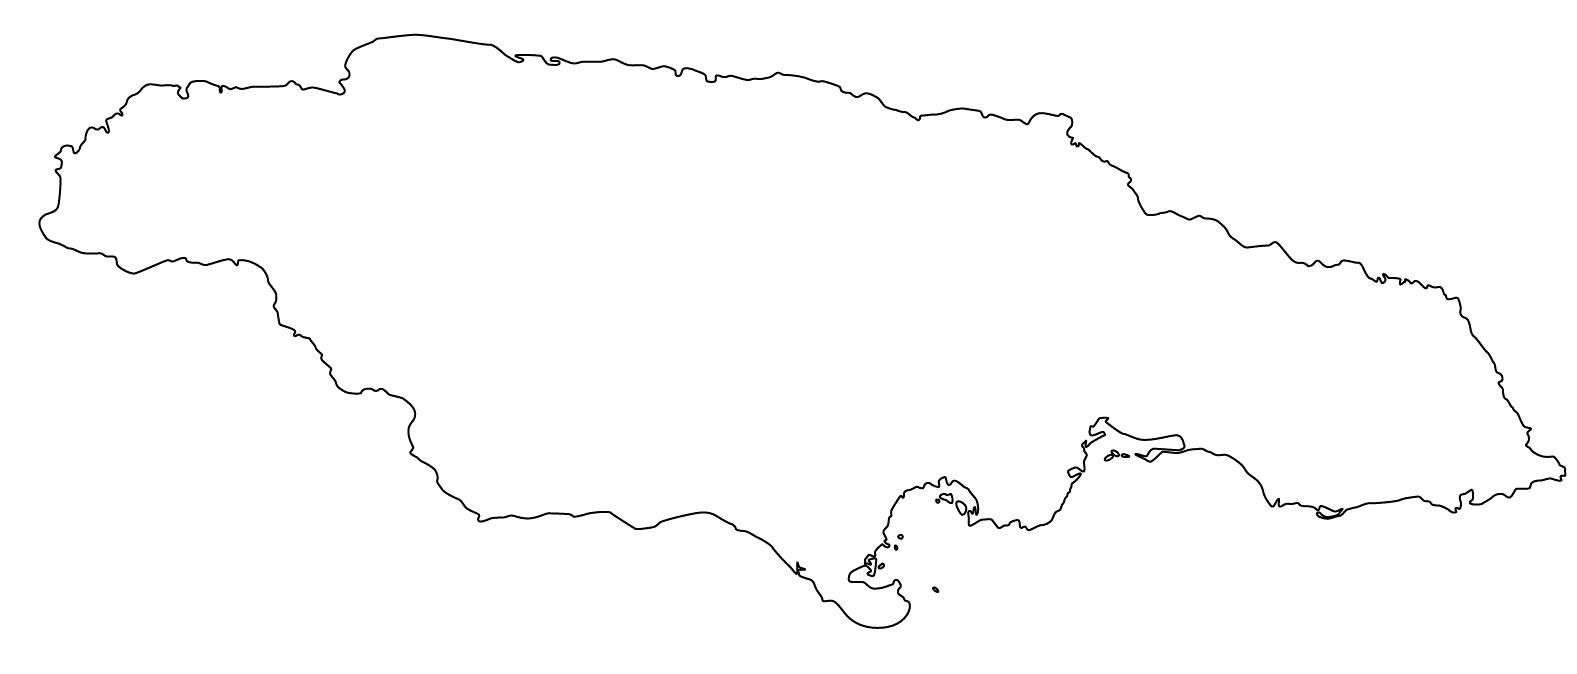 Blank map of jamaica - Blank map of jamaica with borders ... on blank island map, blank map of mexico, blank map of the uk, blank map of puerto rico, blank map of the north east, blank map of barbados, blank map of spain, blank map of the galaxy, blank map of the americas, full map of caribbean, blank map of the near east, blank map of asia, blank map of the mediterranean basin, blank wall map, blank map of dubai, blank map of the bahamas, printable map caribbean, blank map caribbean sea, blank map wallpaper, blank outline map caribbean,